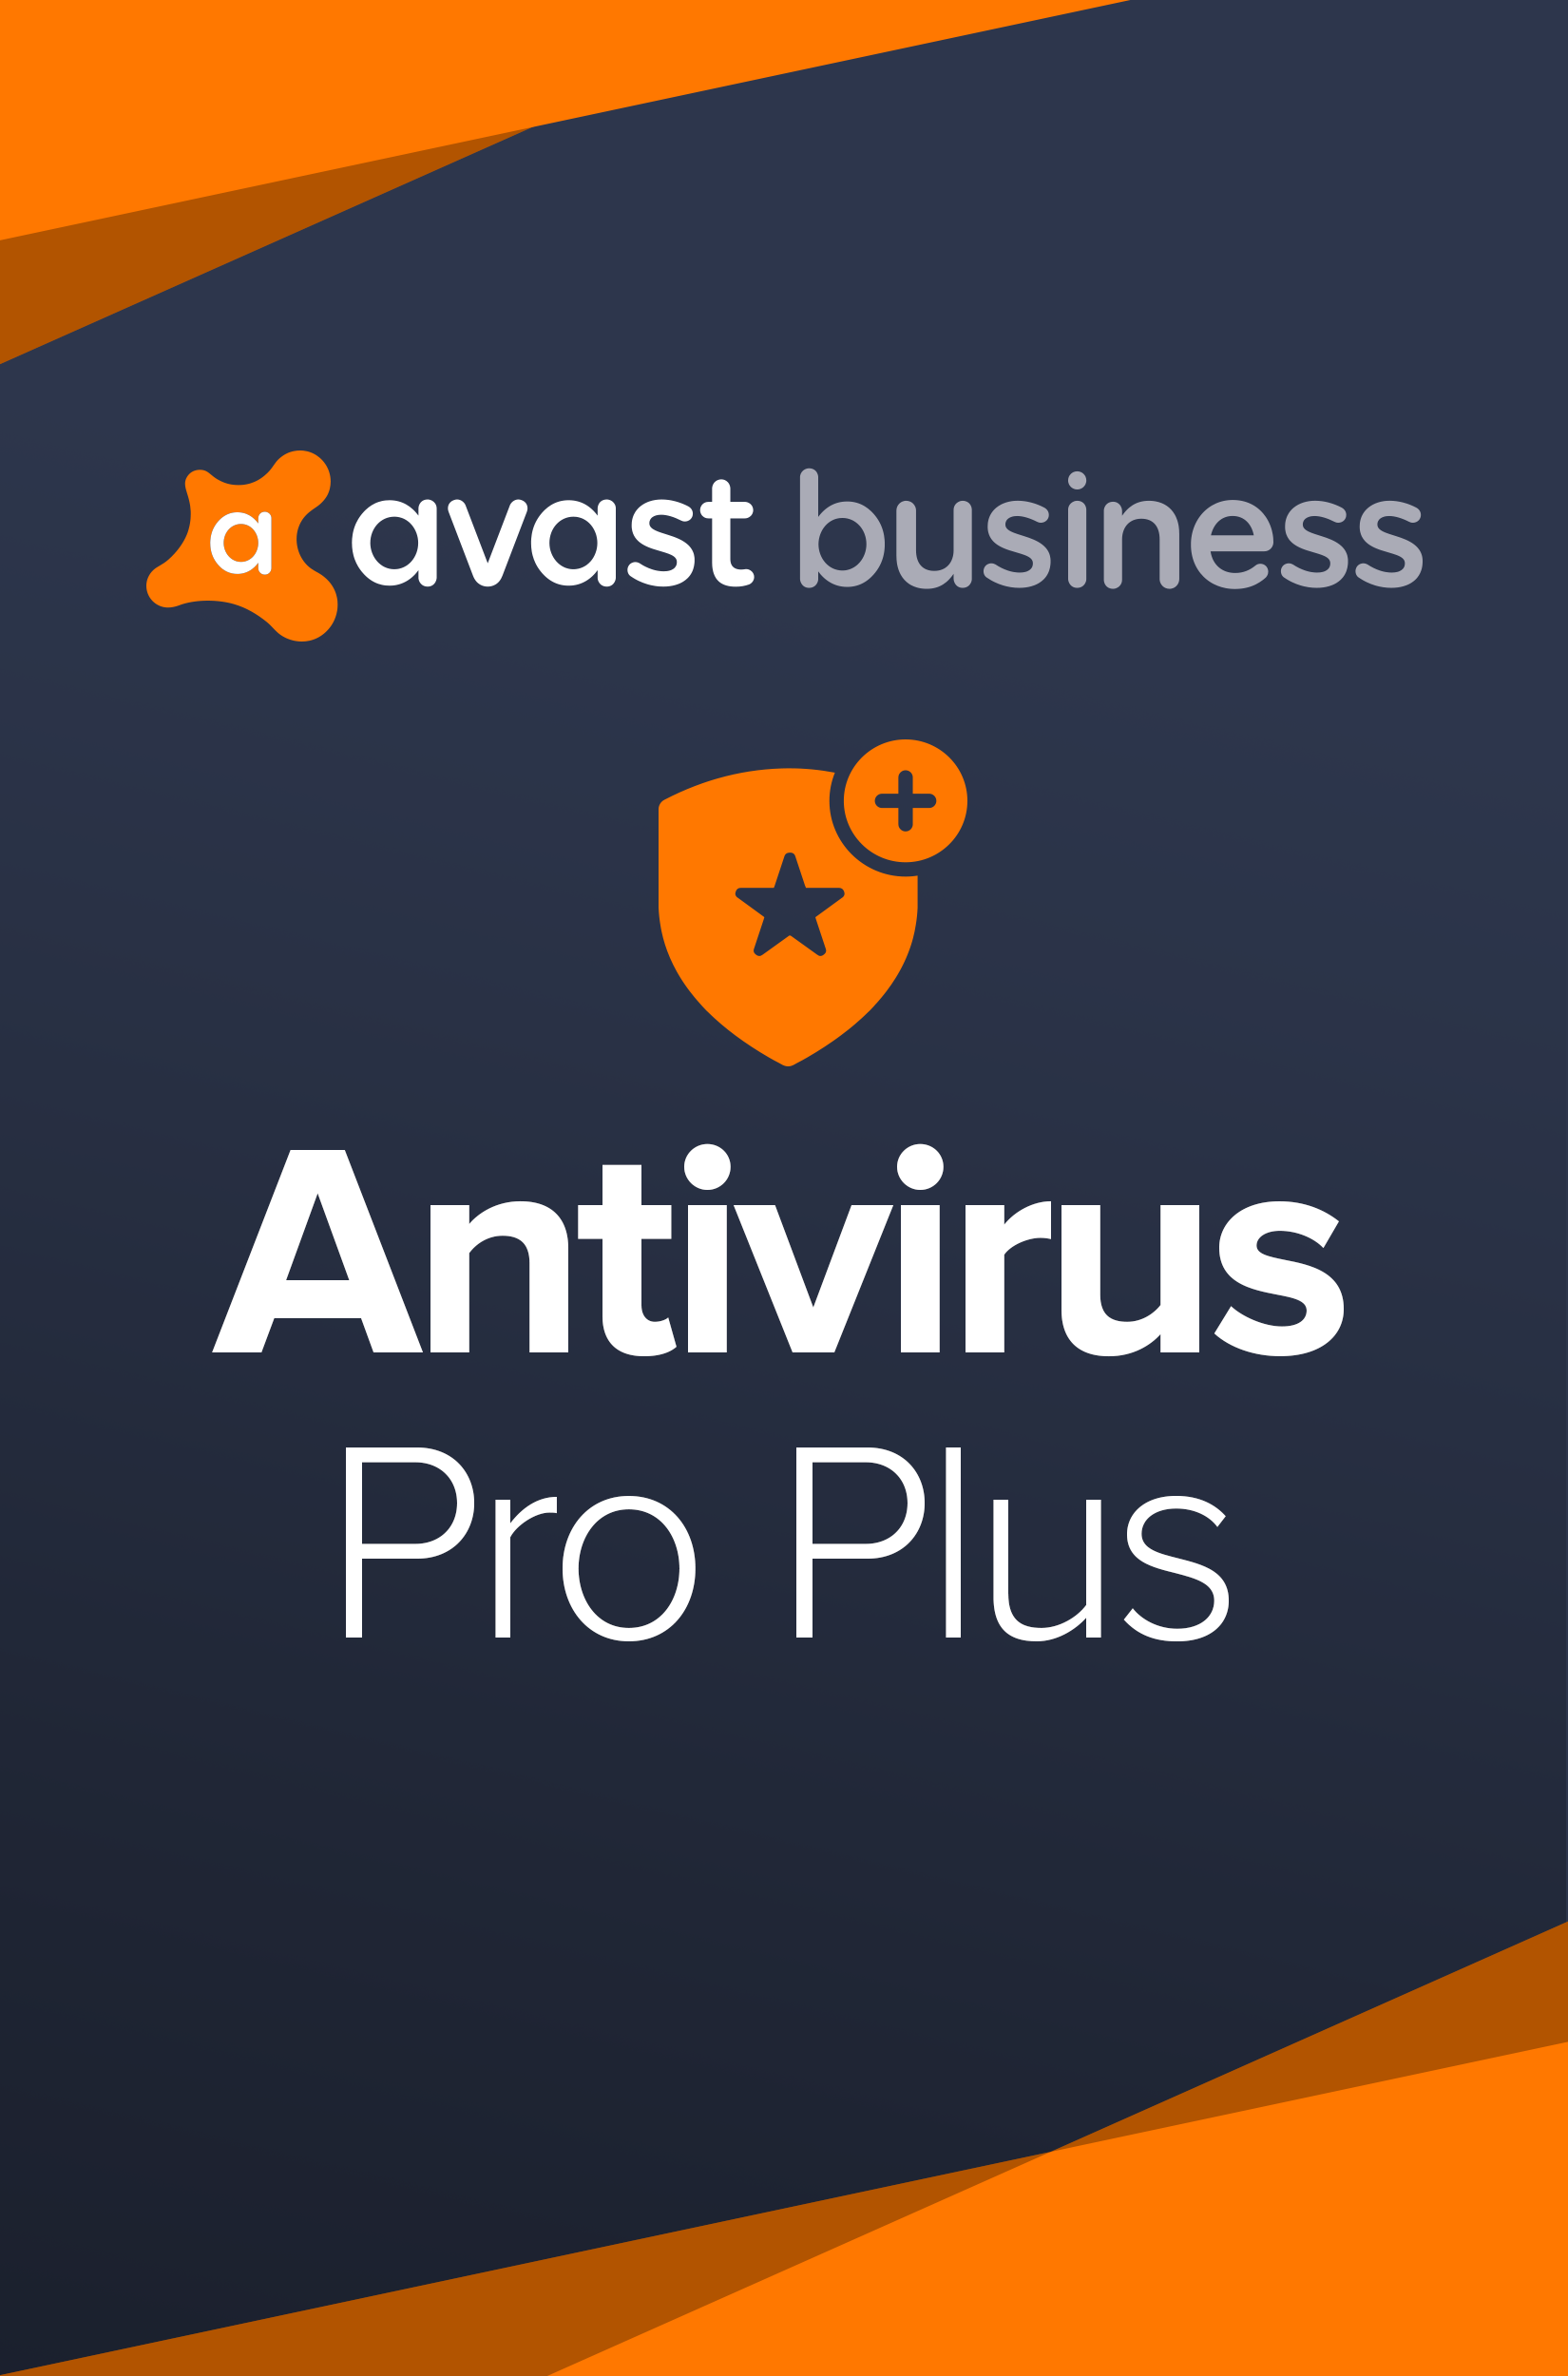 Amazon.com: Avast Business Antivirus Pro Plus 2018 (25 Users, 3 Years)  [Download]: Software